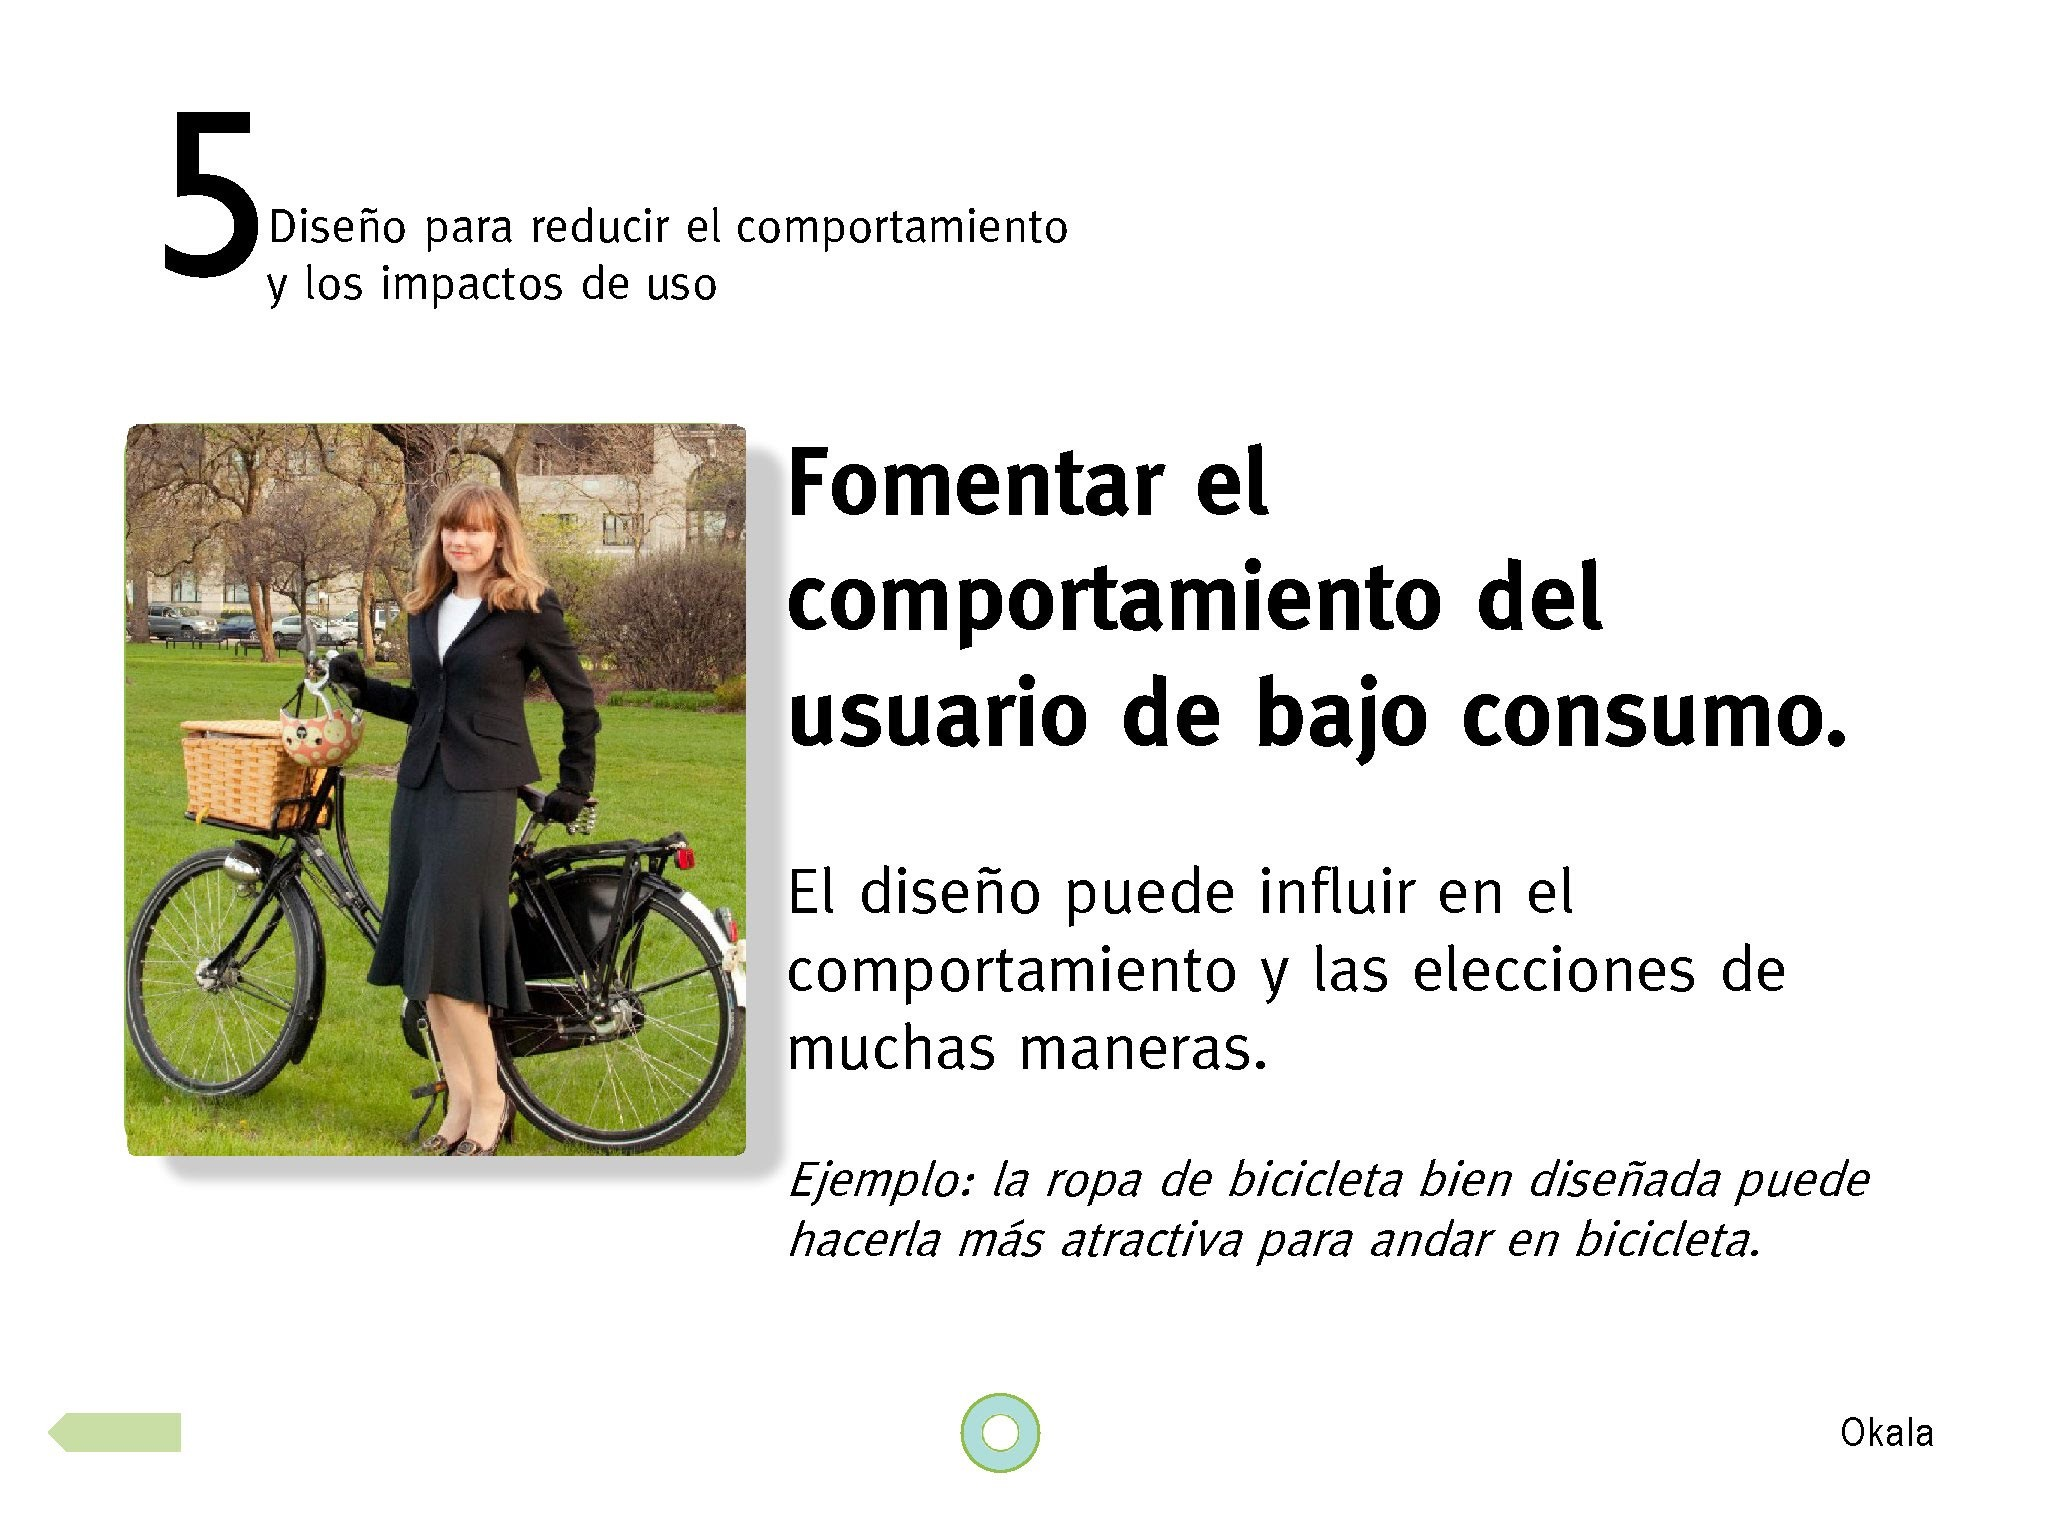 okala-ecodesign-strategy-guide-2012-spanish.new_page_27-1